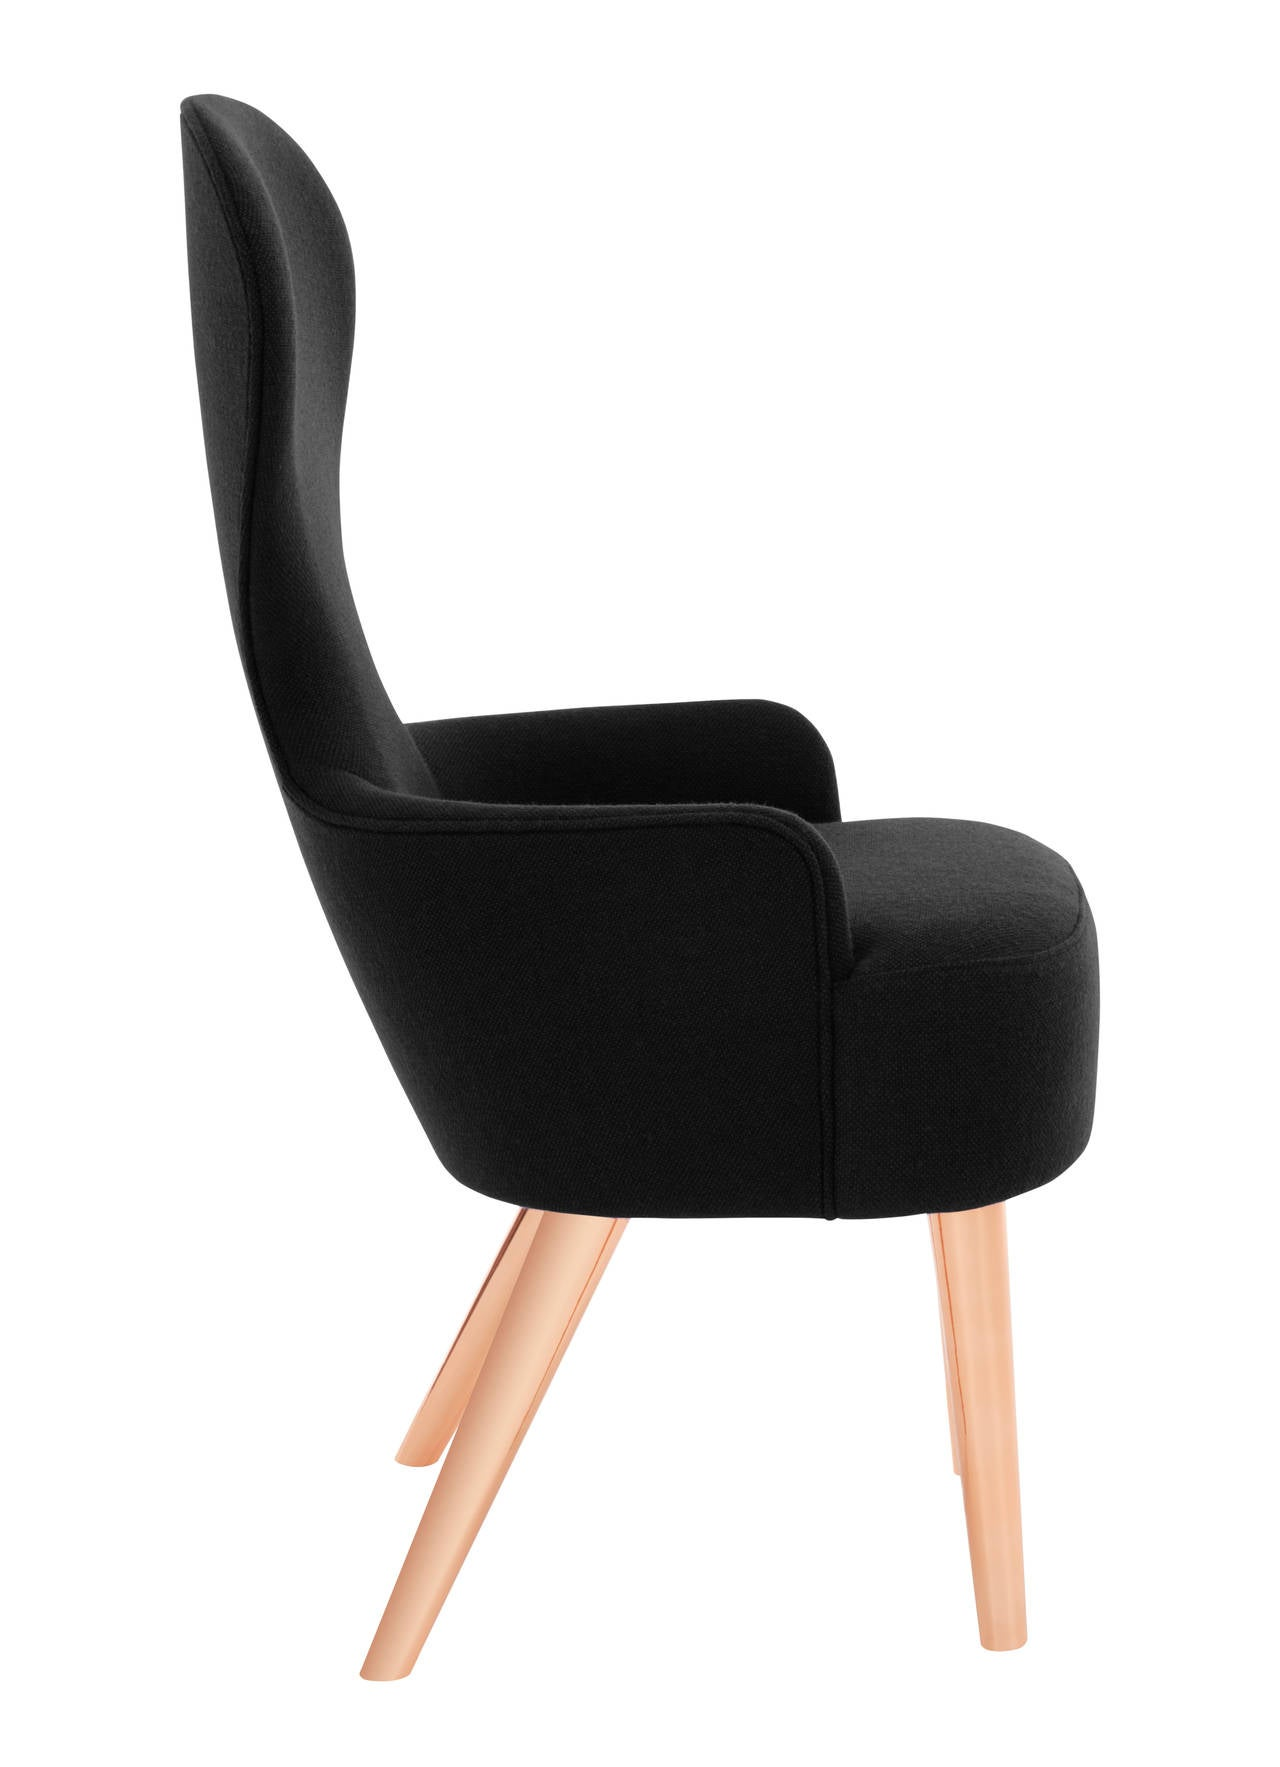 Wingback Dining Chairs Wingback Dining Chair By Tom Dixon For Sale At 1stdibs